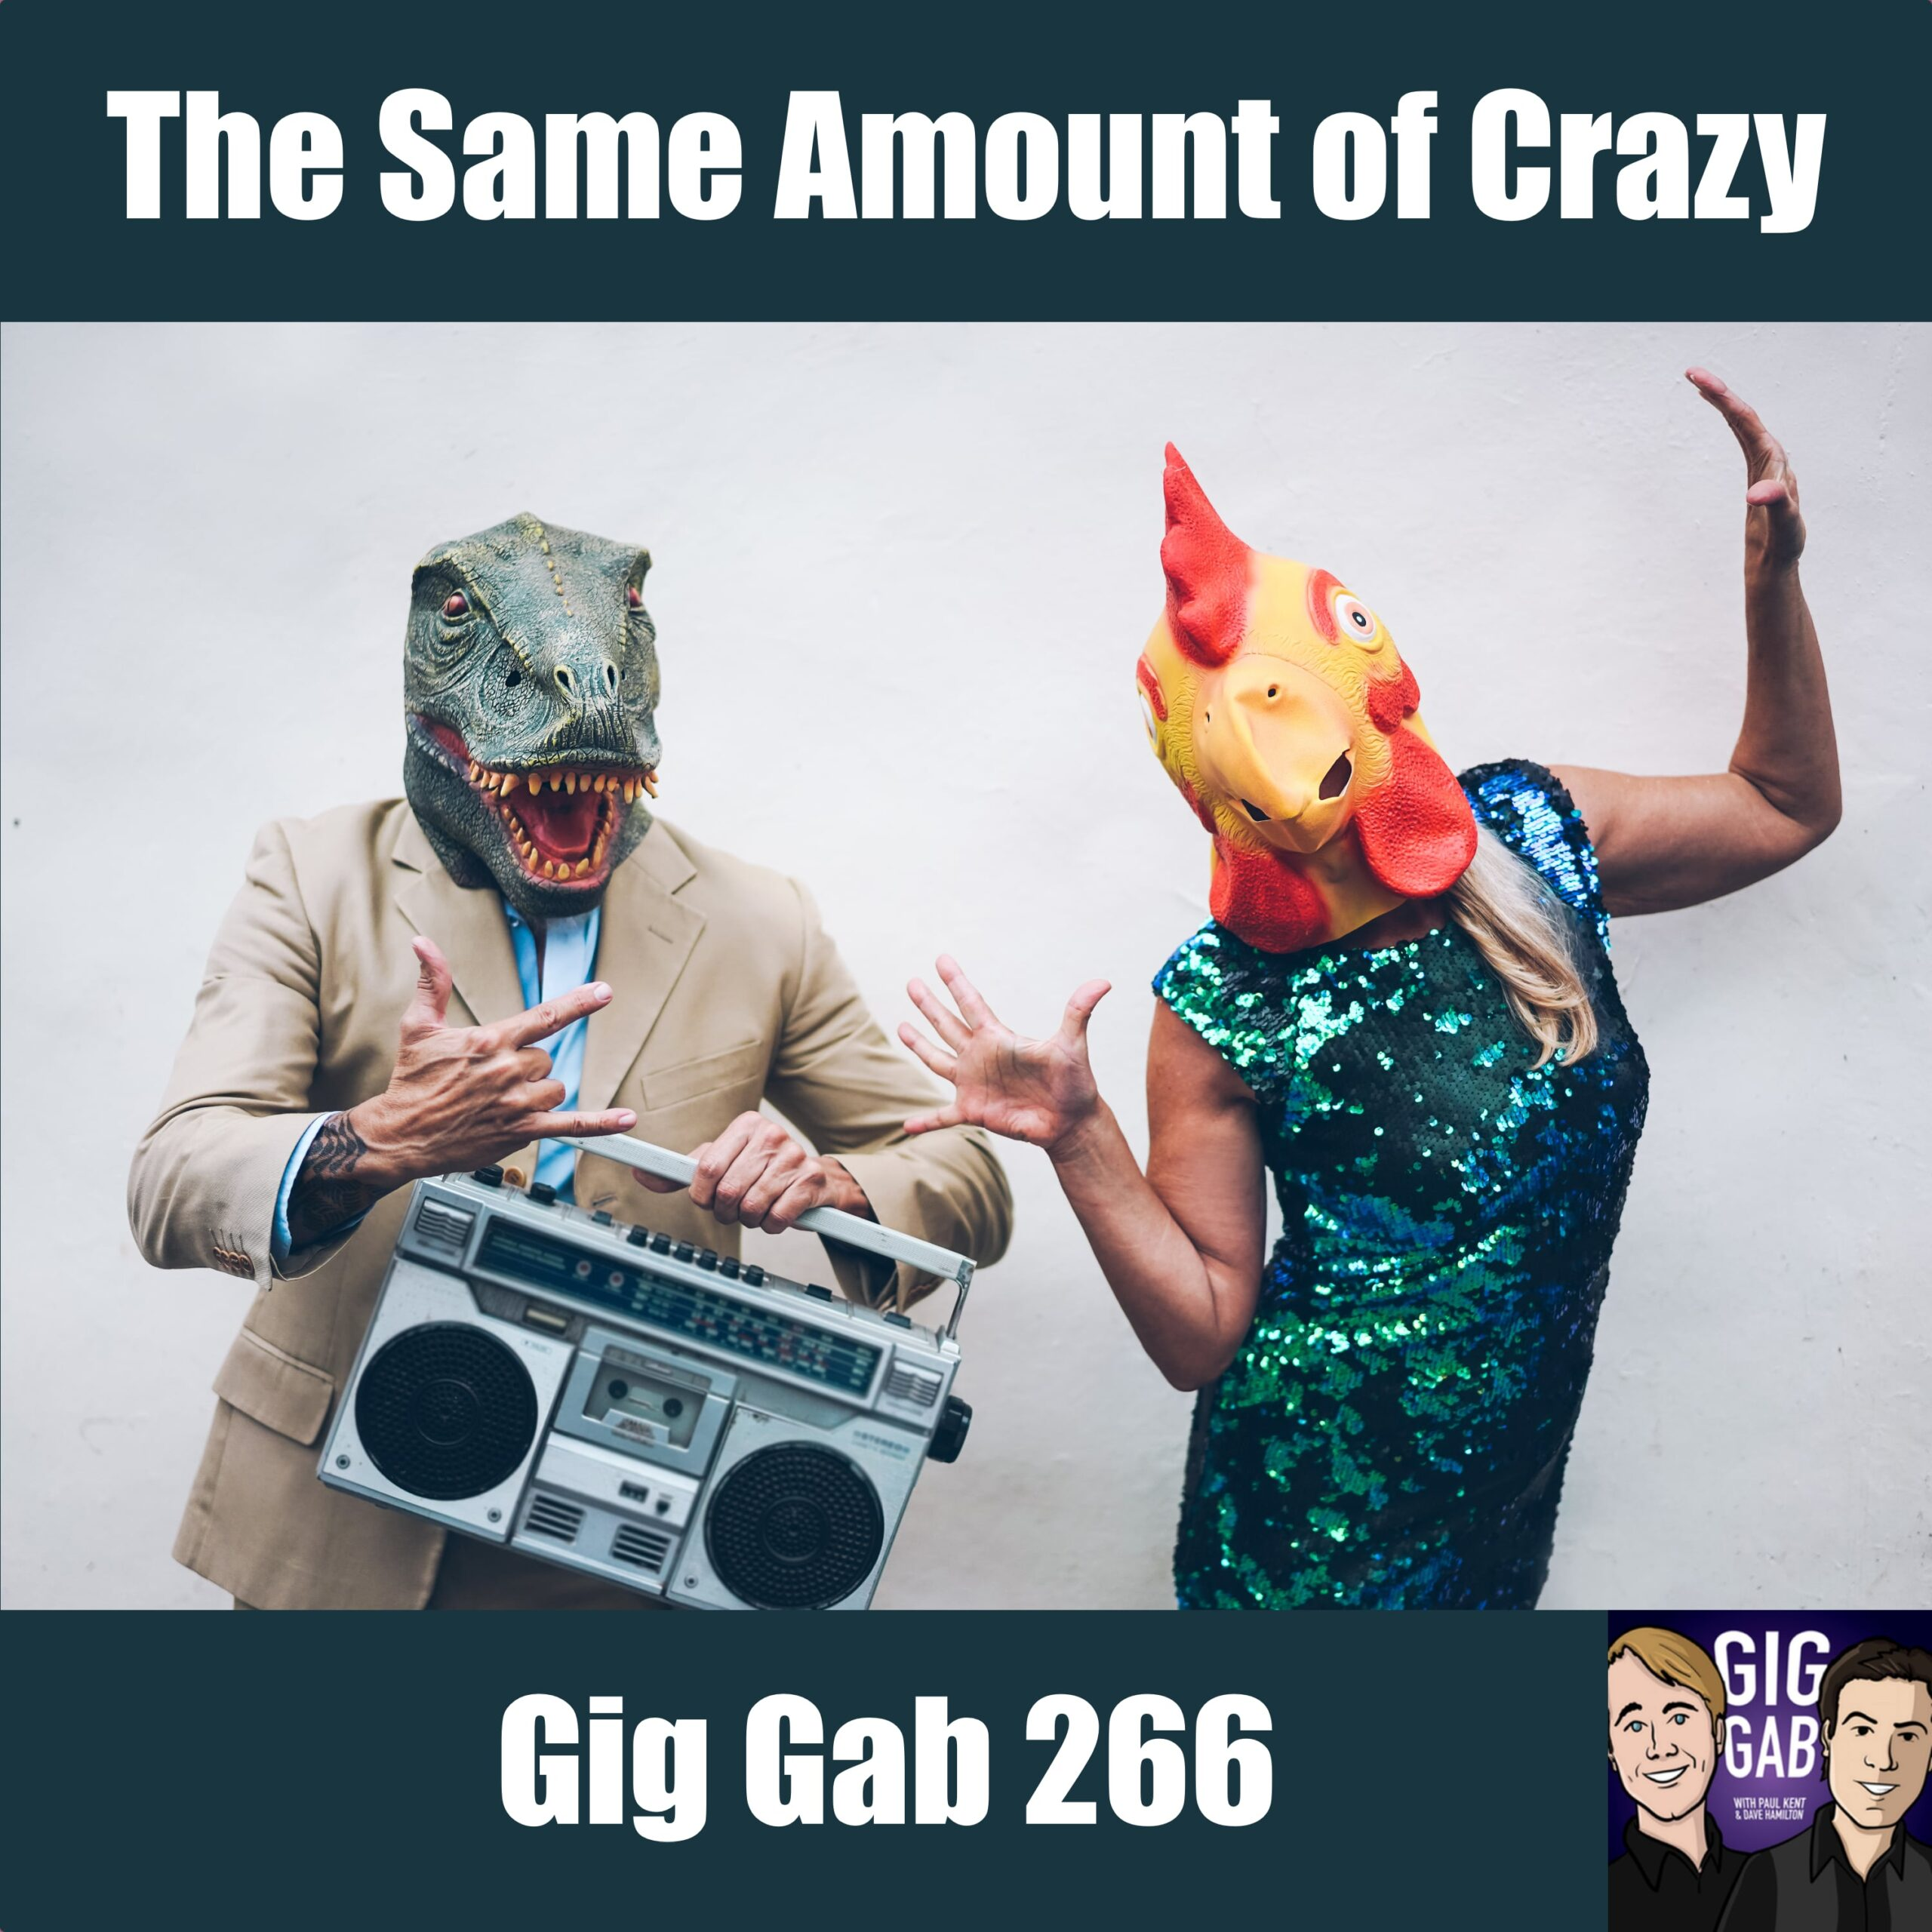 Gig Gab 266 episode image with masked people dancing with a boom box. Text: The Same Amount of Crazy